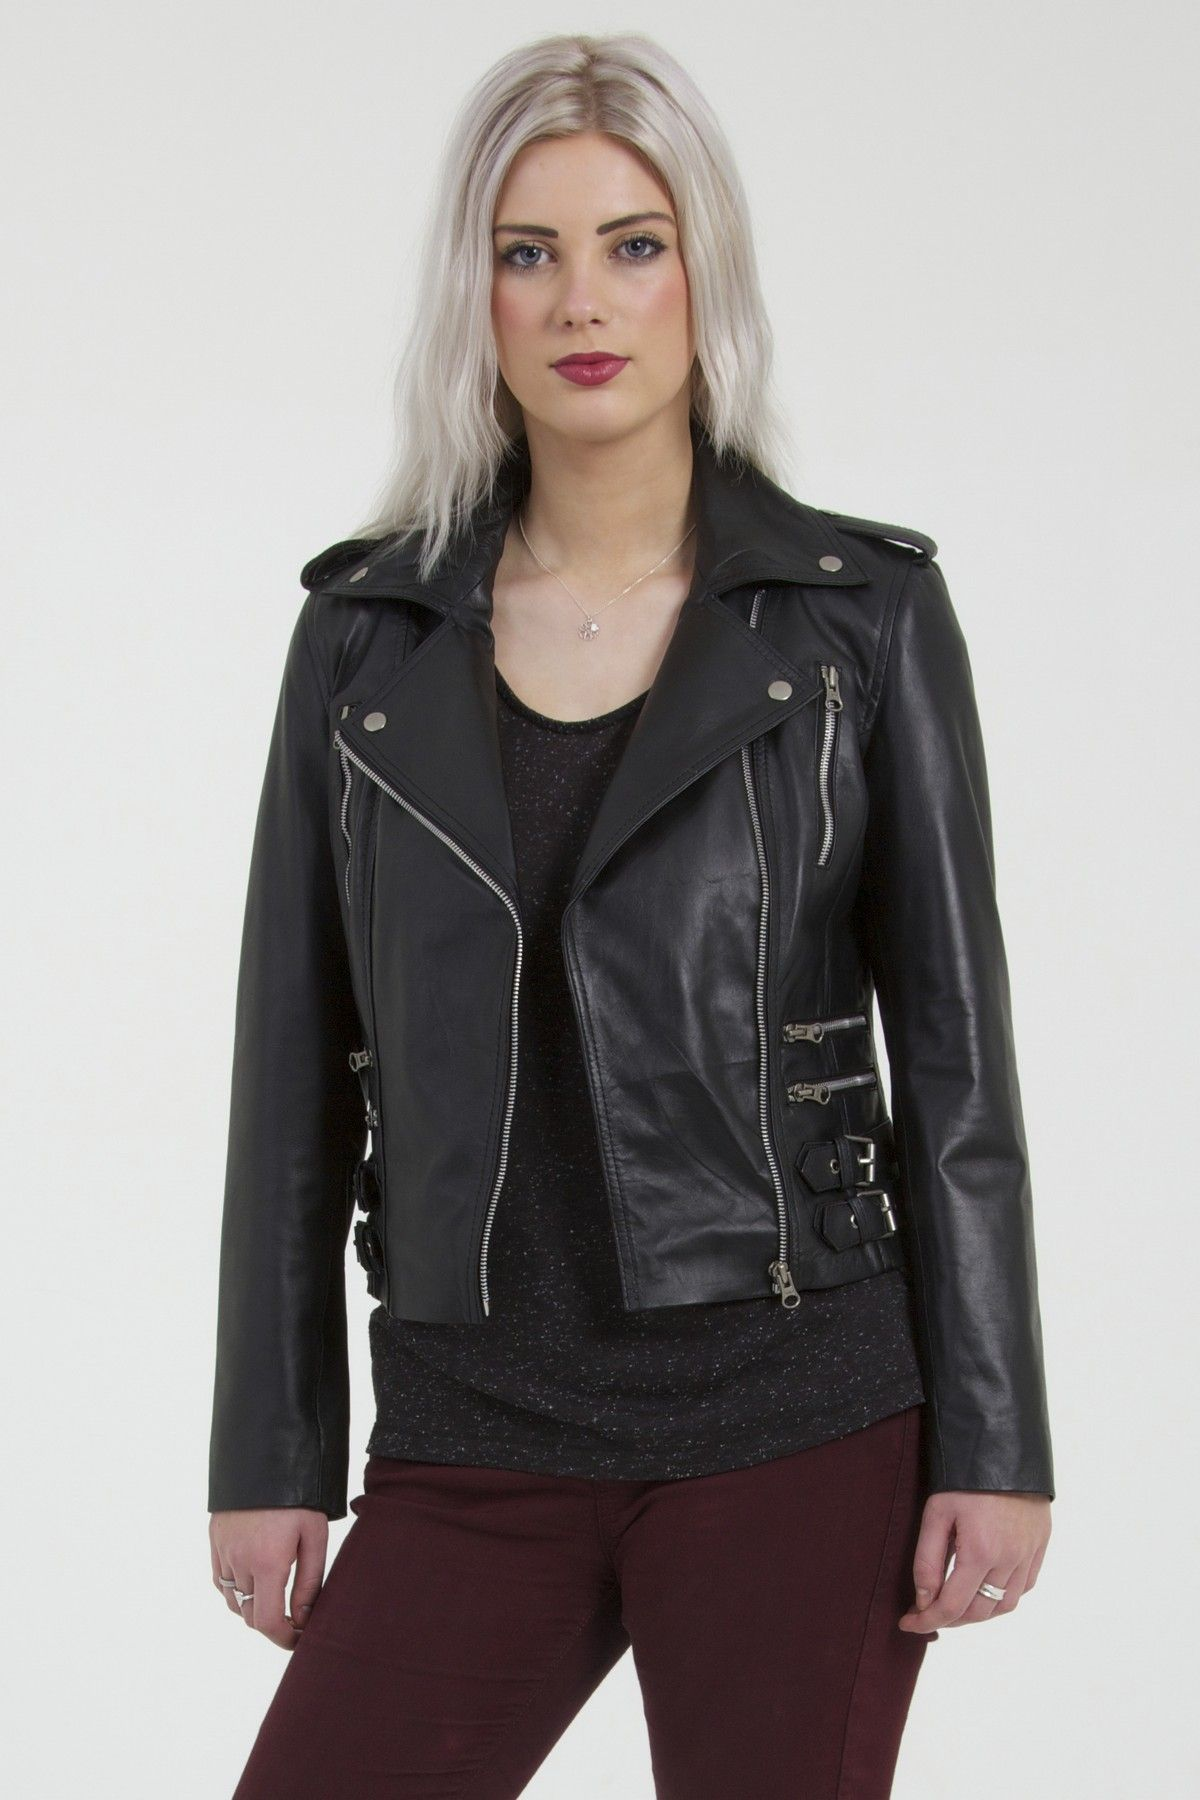 leather jackets for women | Women's Black Leather Biker Jacket ...